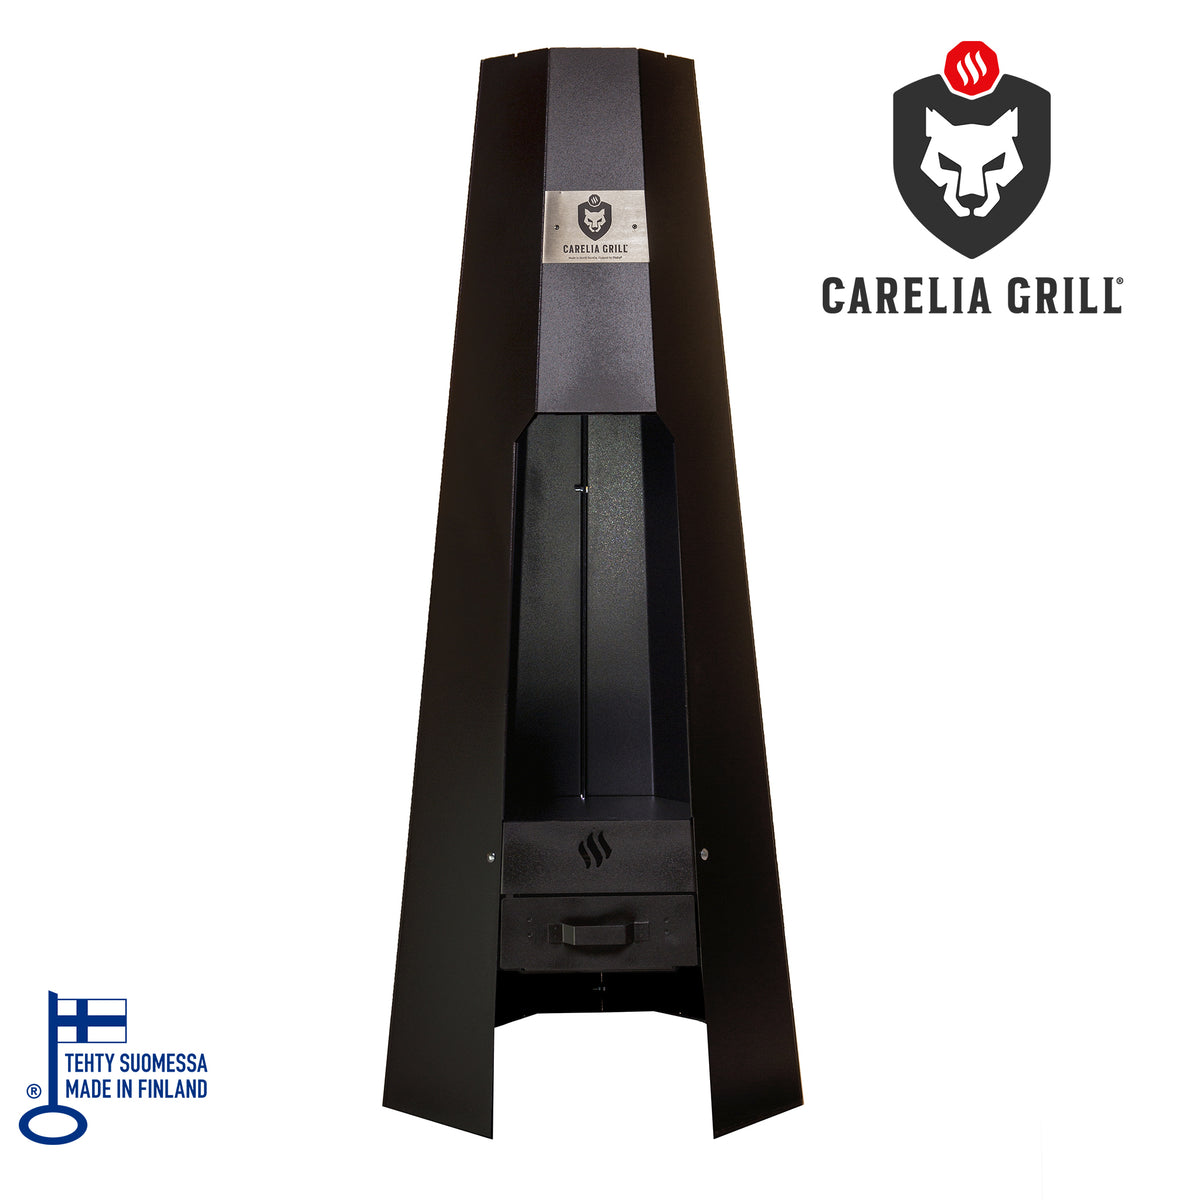 CARELIA GRILL® A-FIRE GRILL RACK